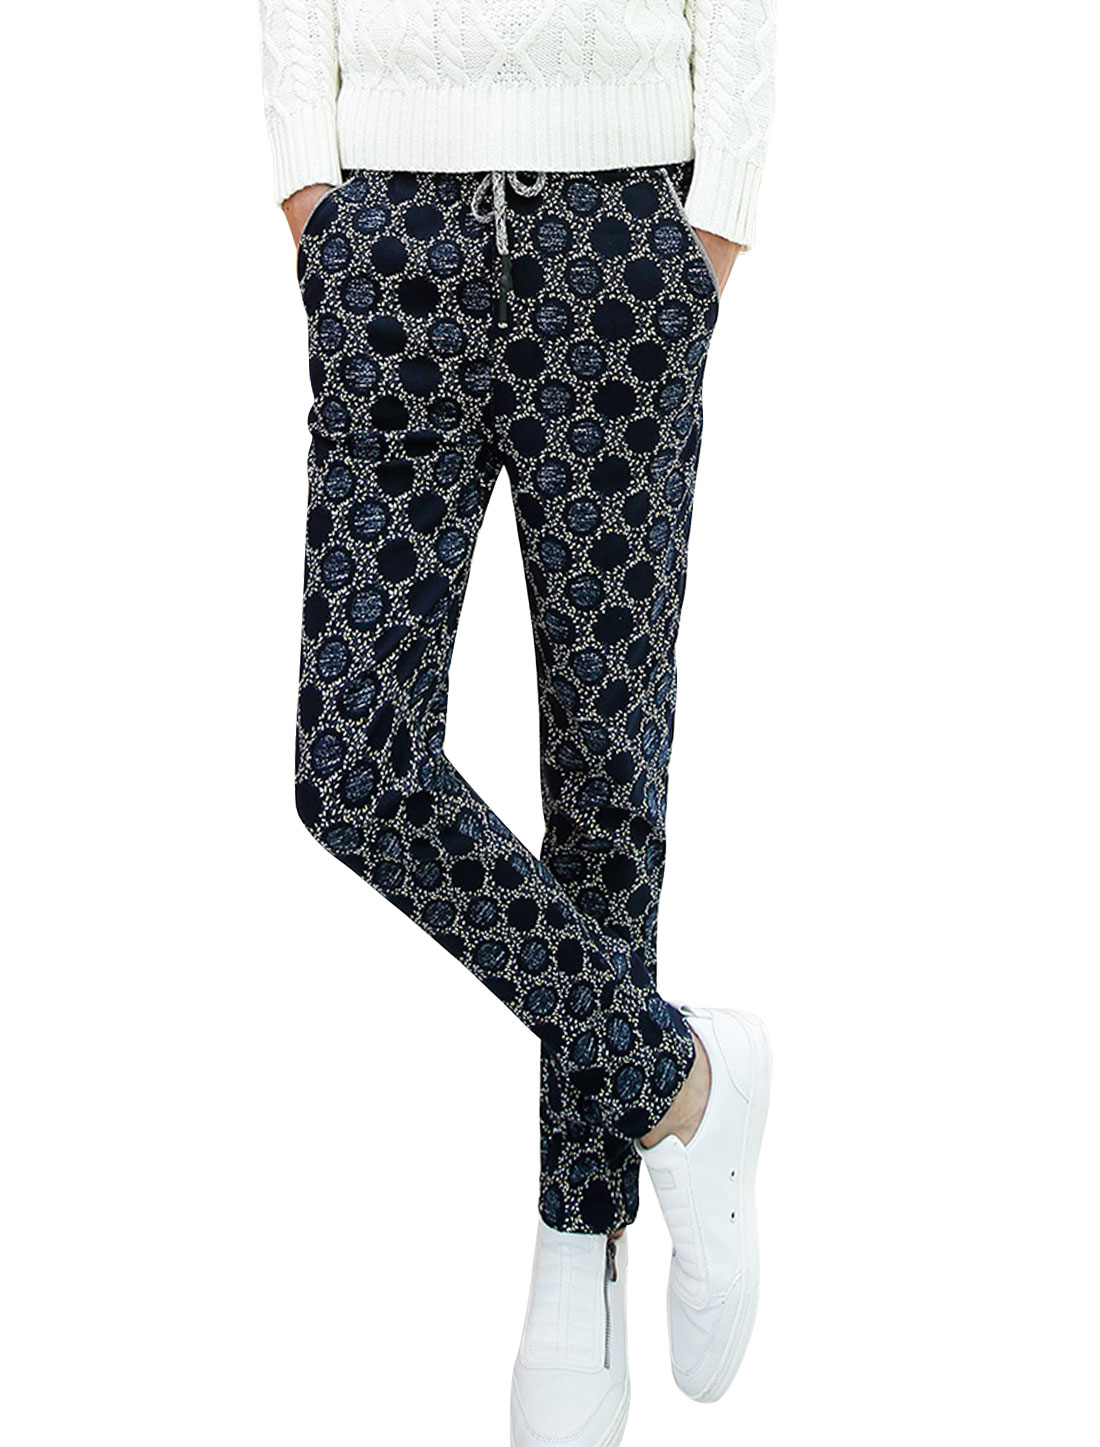 Men Drawstring Design All Over Spot Pattern Casual Pants Navy Blue W30